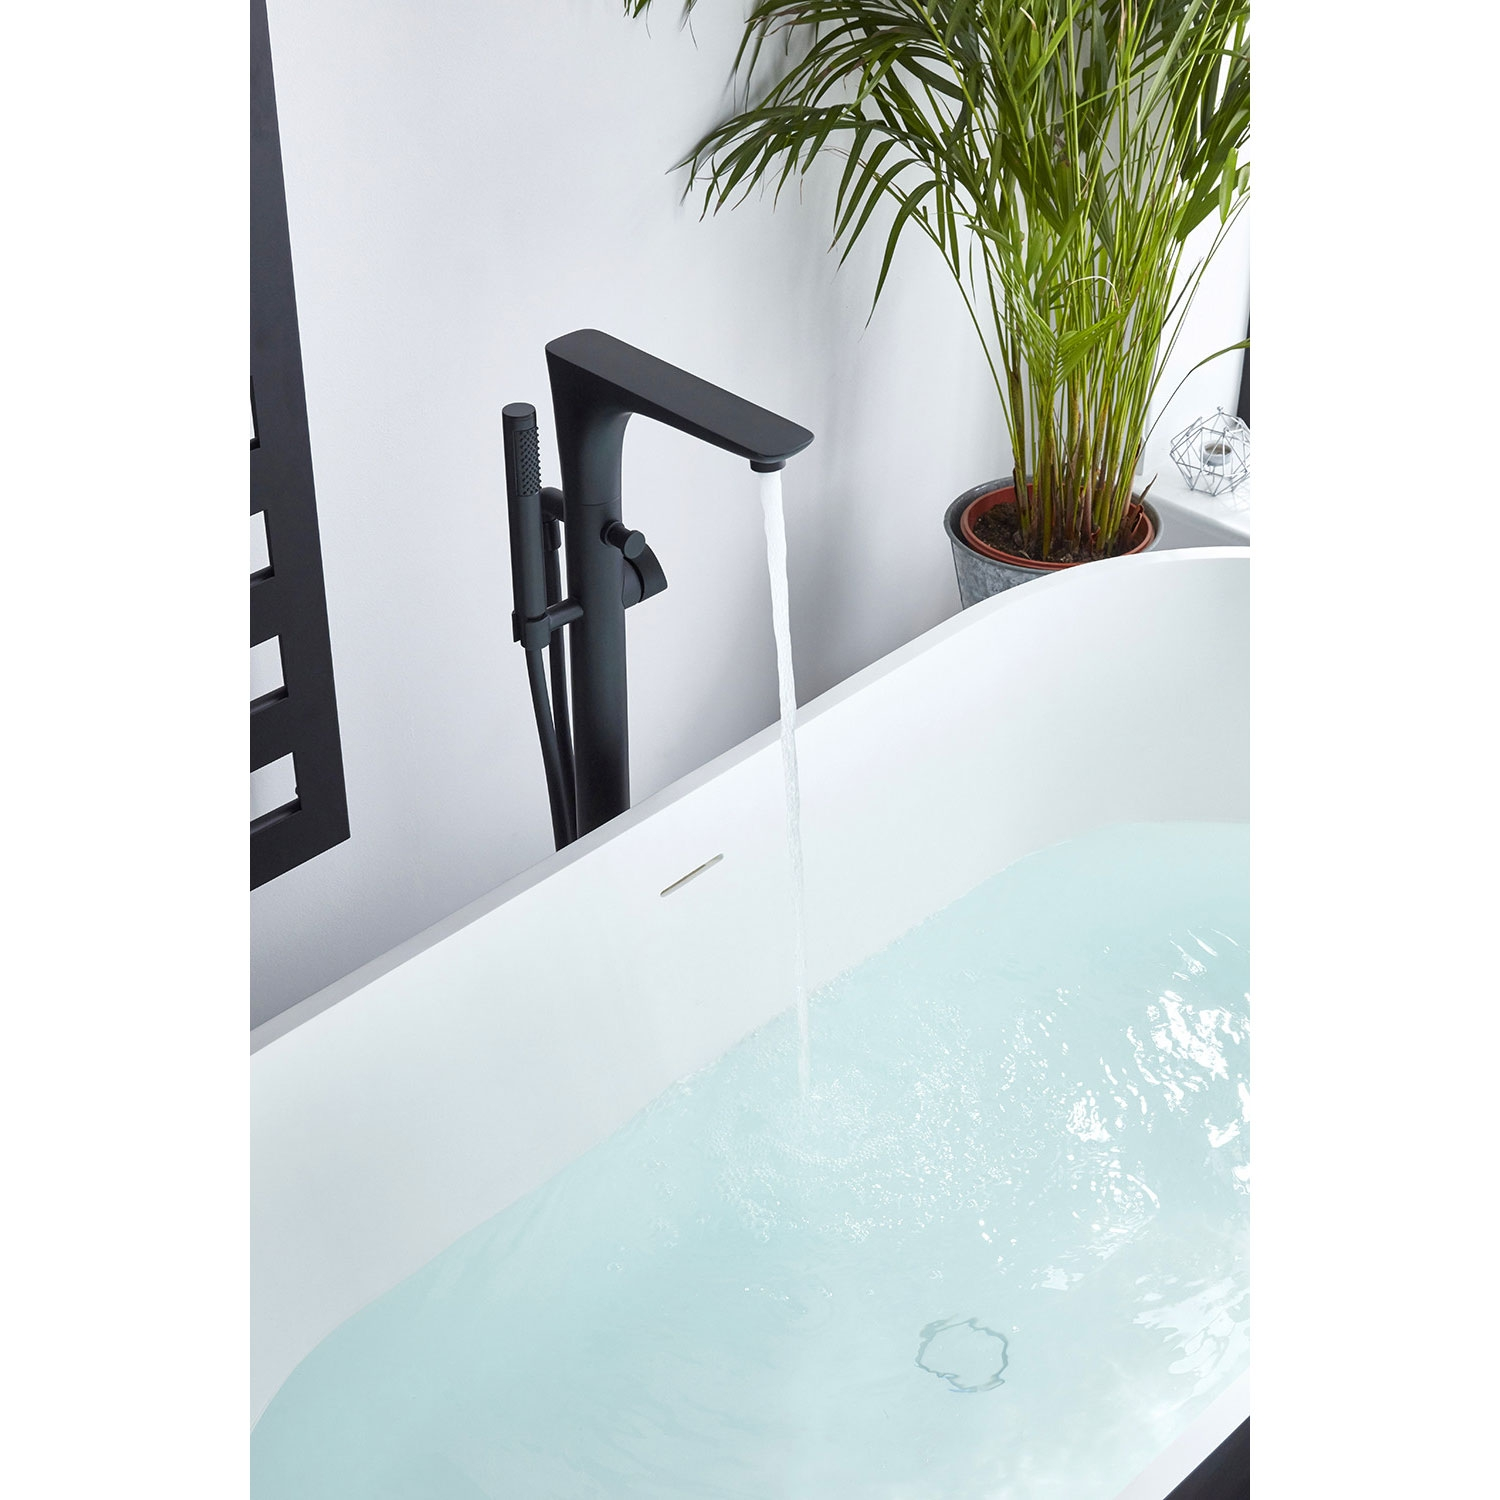 Verona Vibe Freestanding Bath Shower Mixer Tap with Shower Handset - Black-0